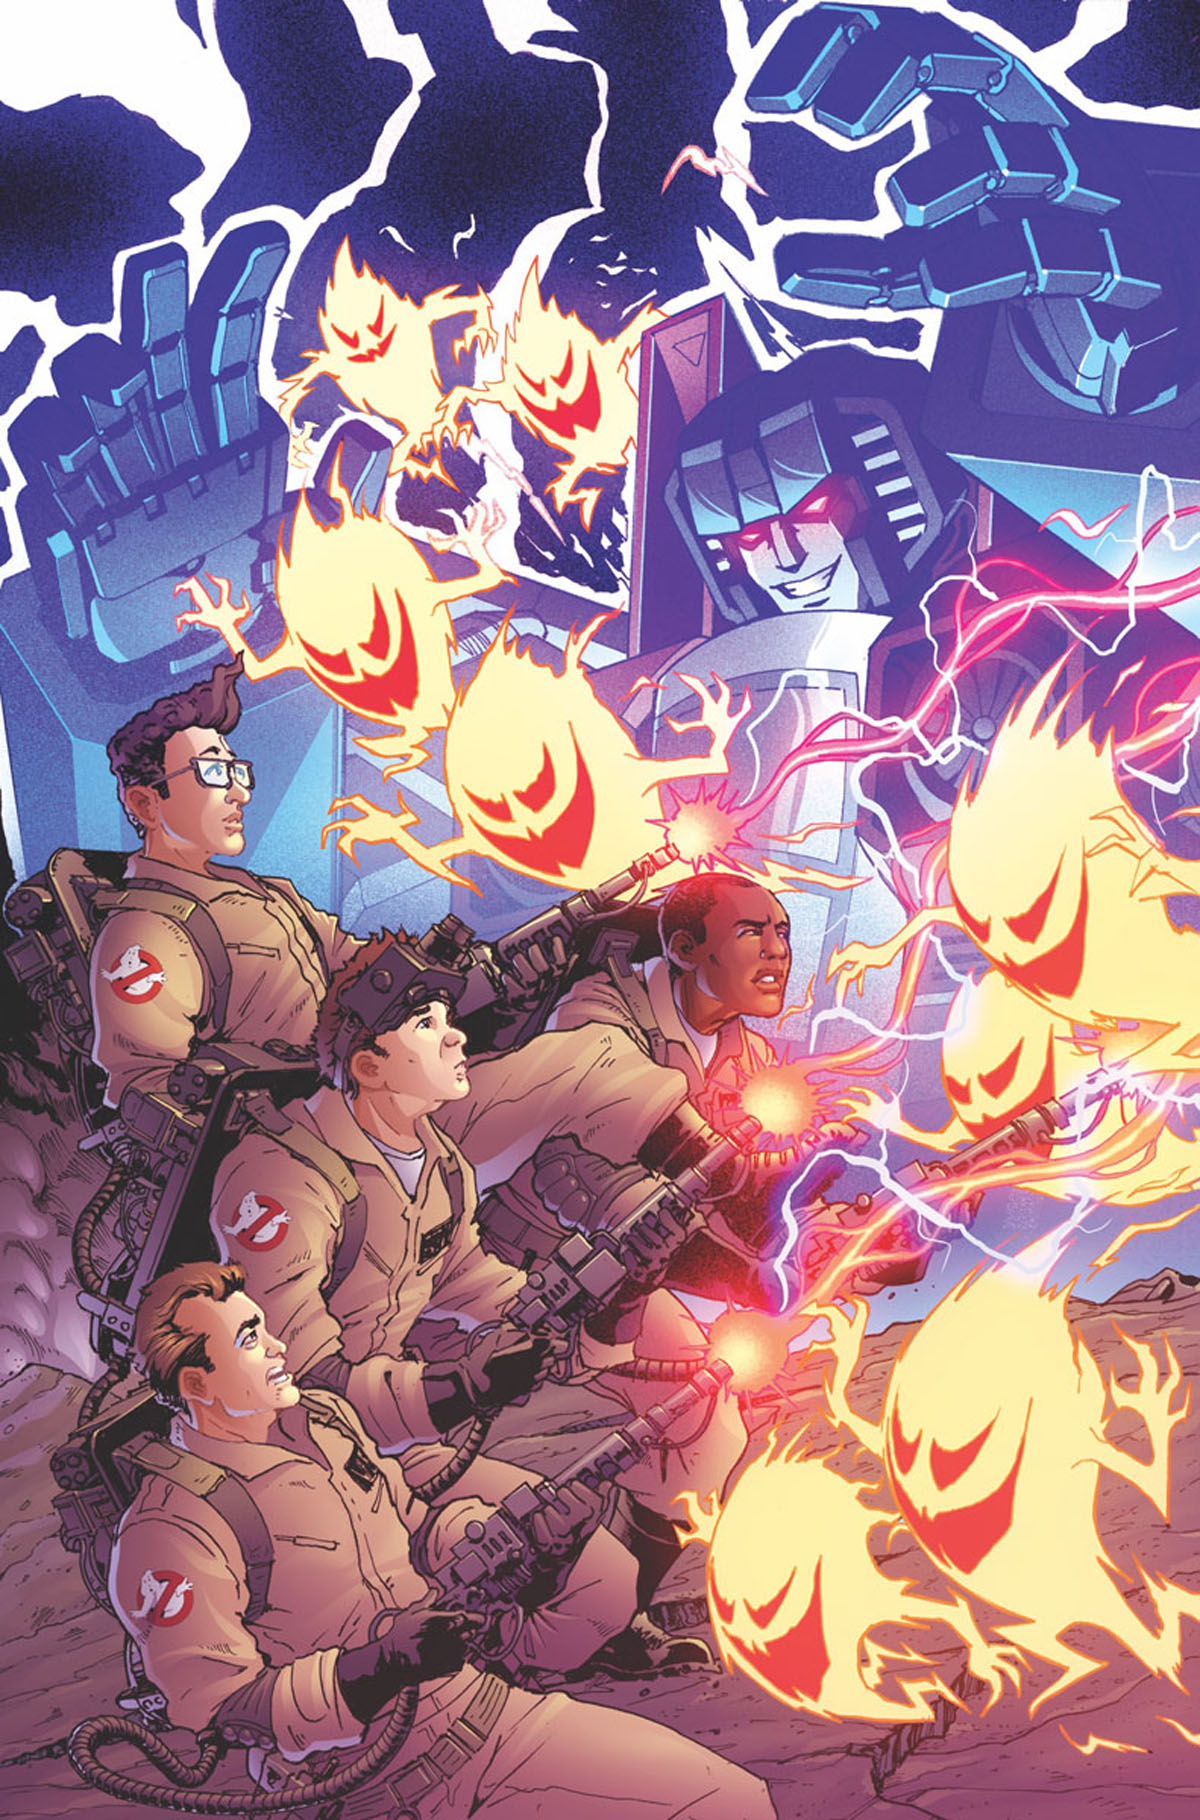 Transformers/Ghostbusters #1 cover